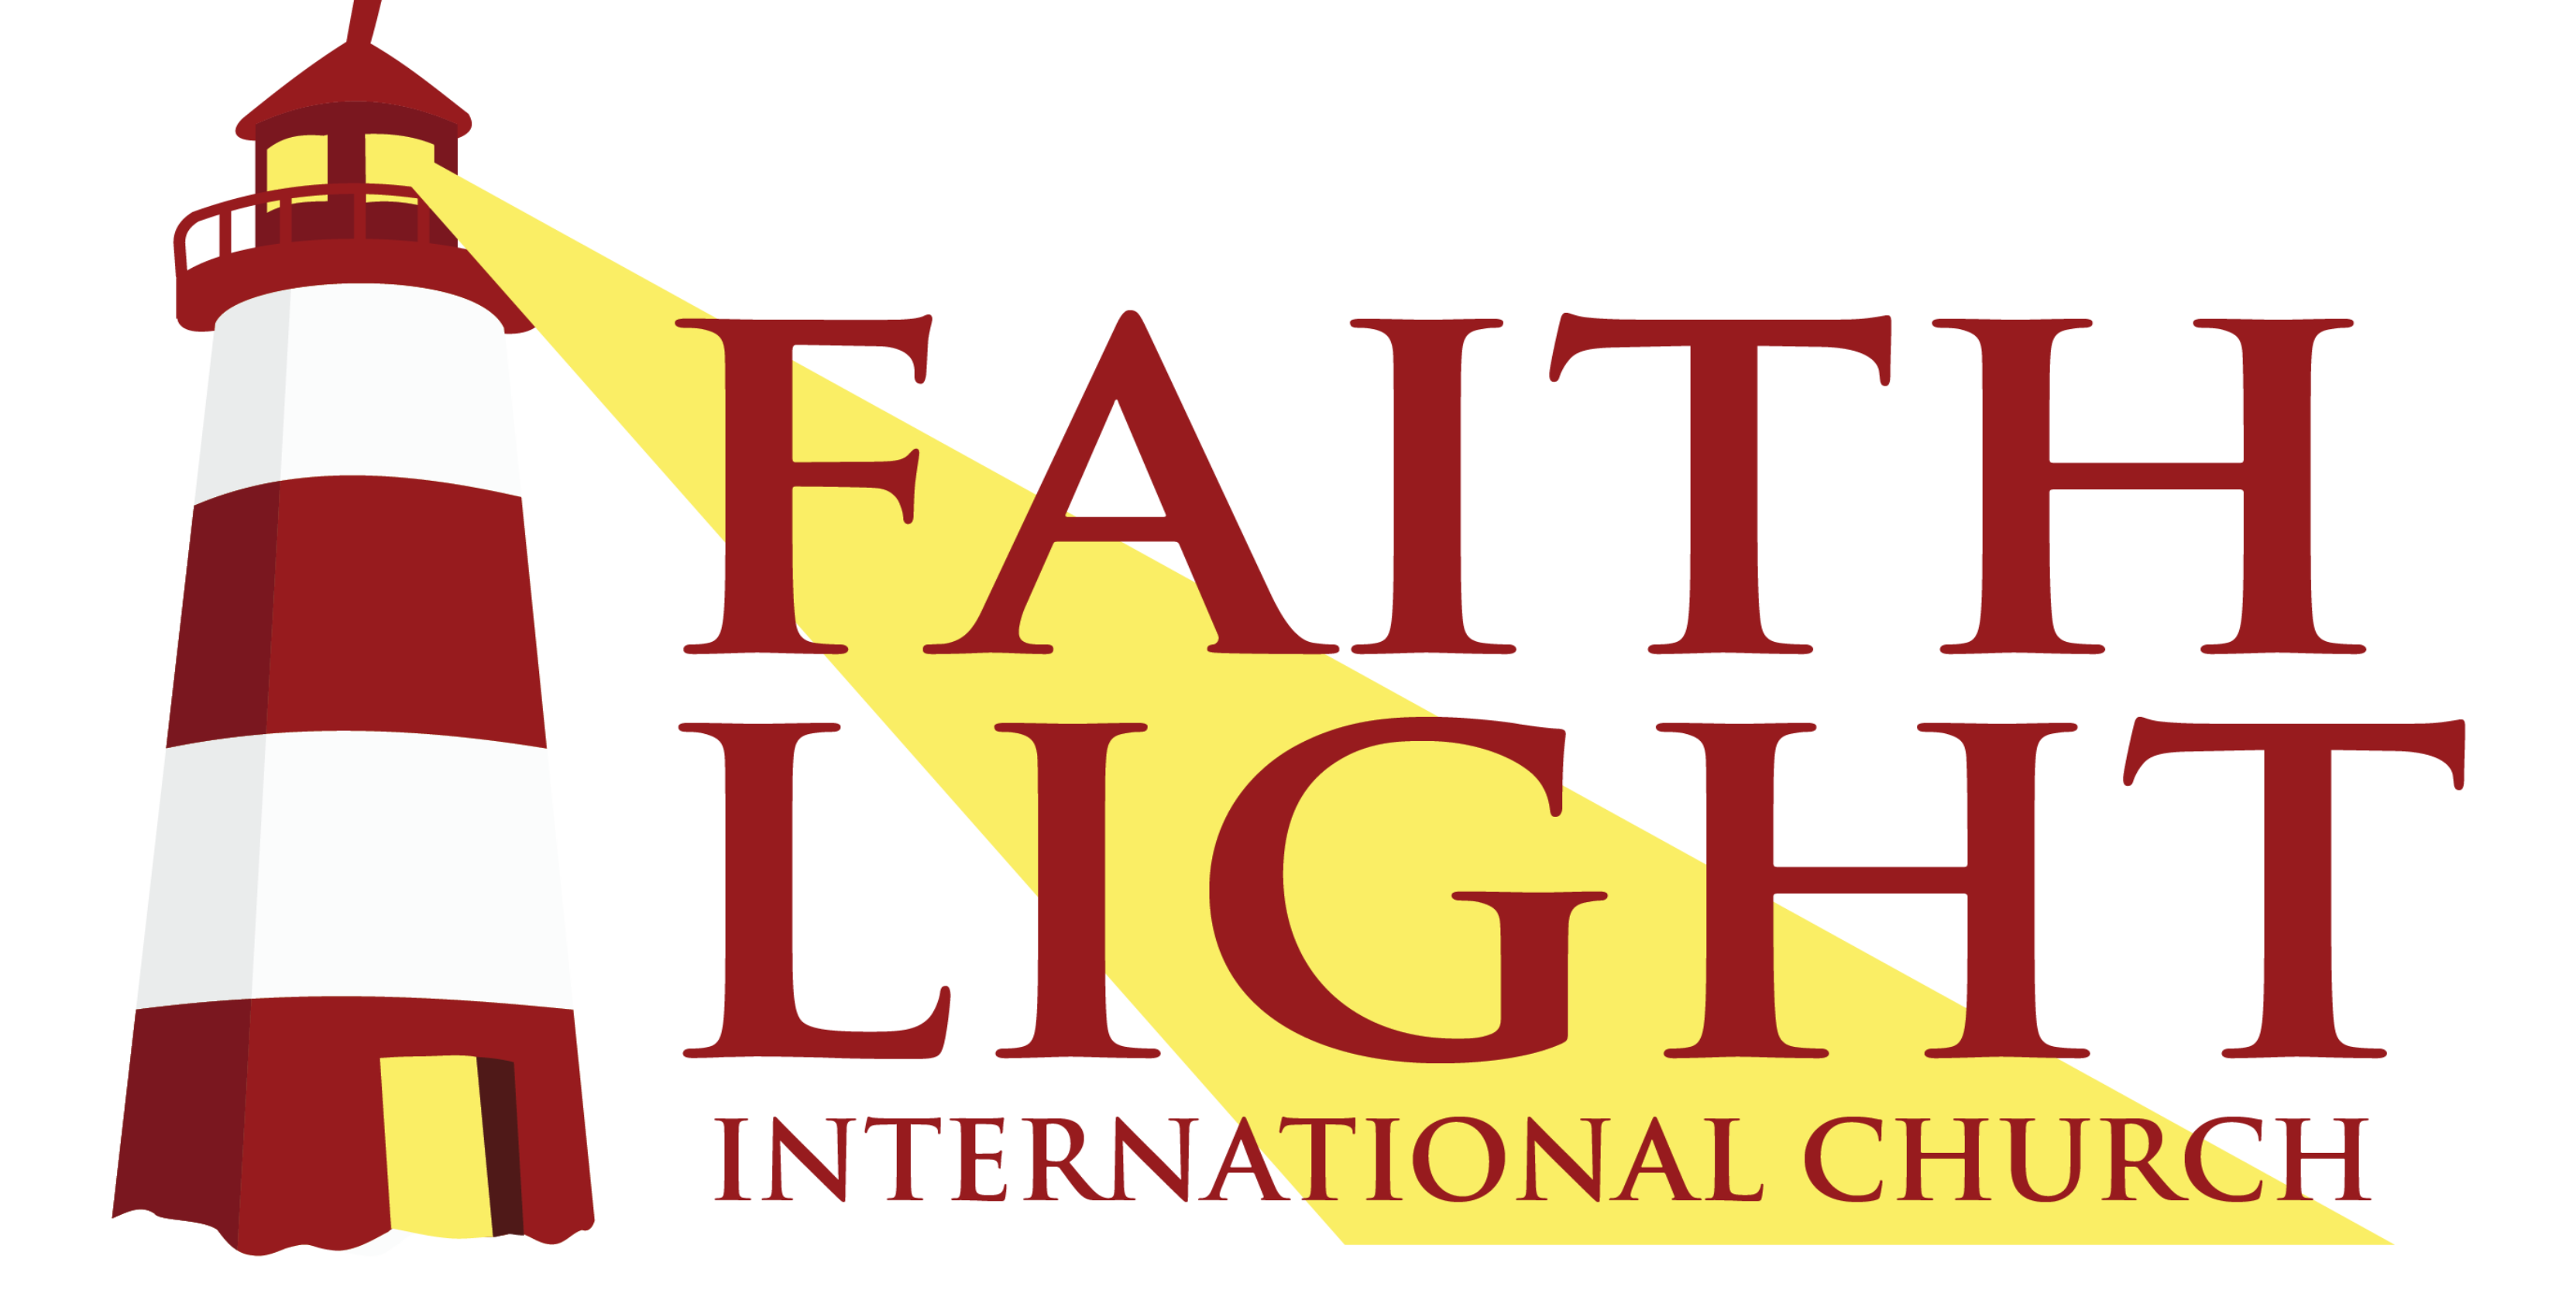 FAITH LIGHT INTL